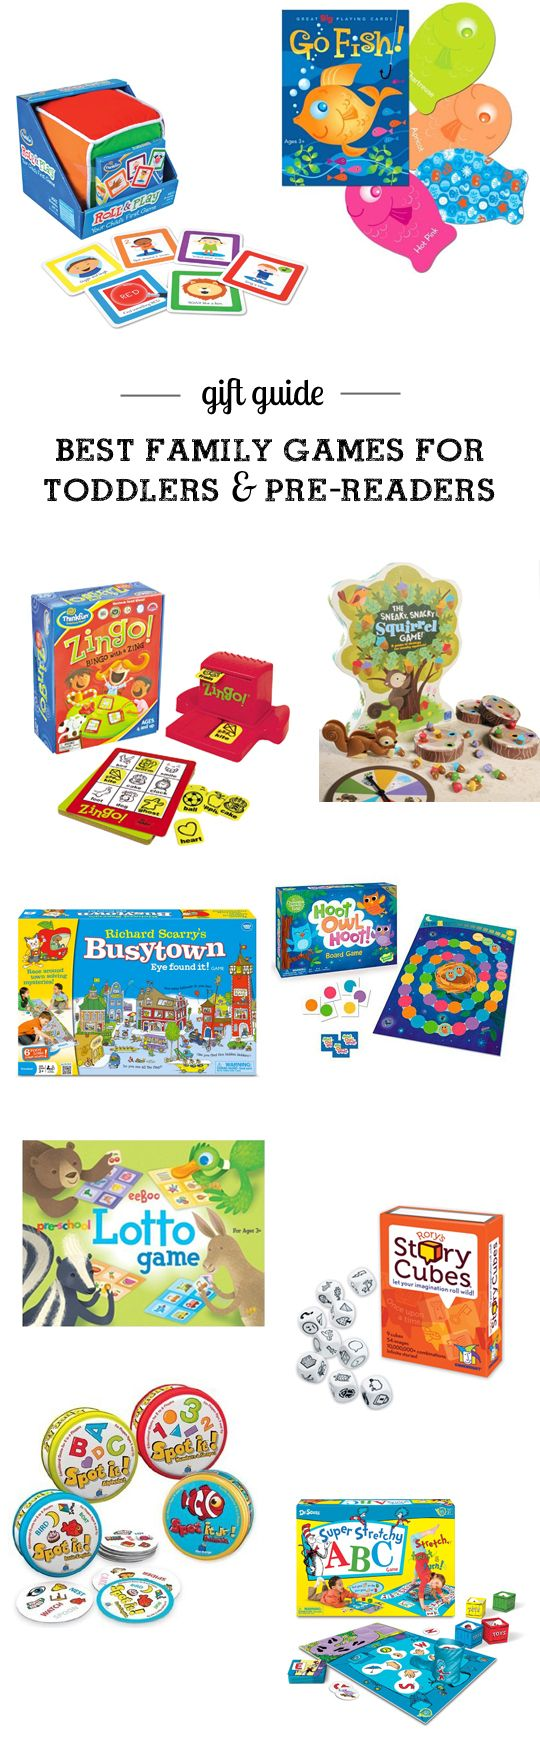 gift guide: best games to start a family game night with toddlers and pre-readers: gift guide: best games to start a family game night with toddlers and pre-readers